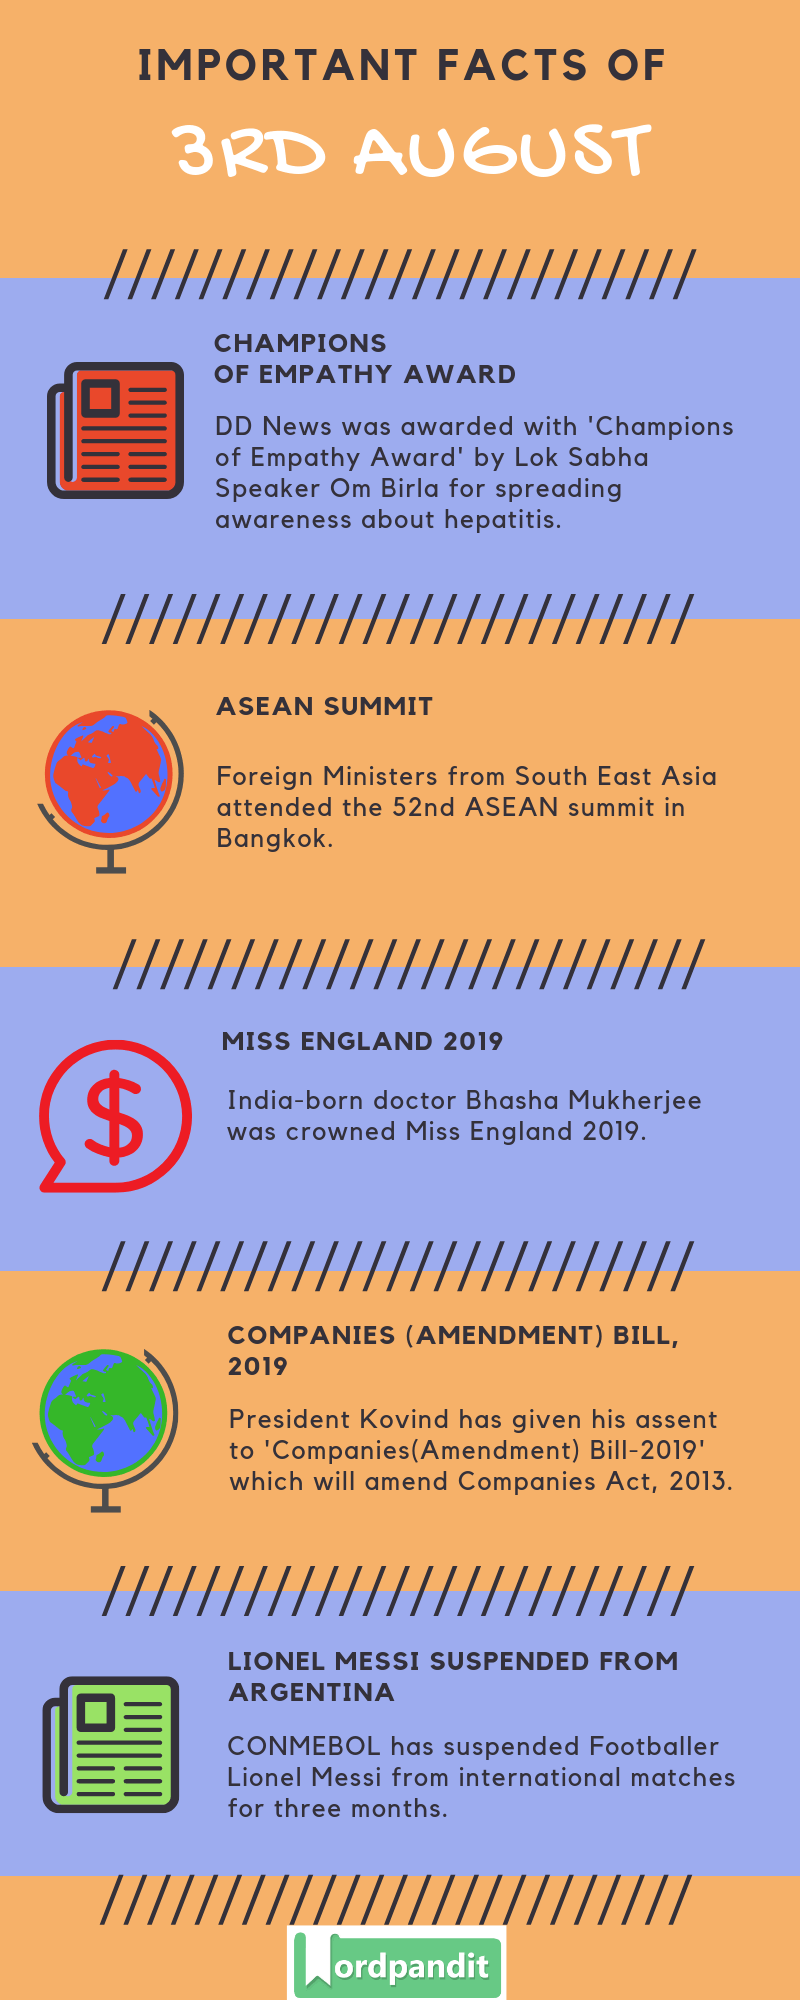 Daily Current Affairs 3 August 2019 Current Affairs Quiz 3 August 2019 Current Affairs Infographic